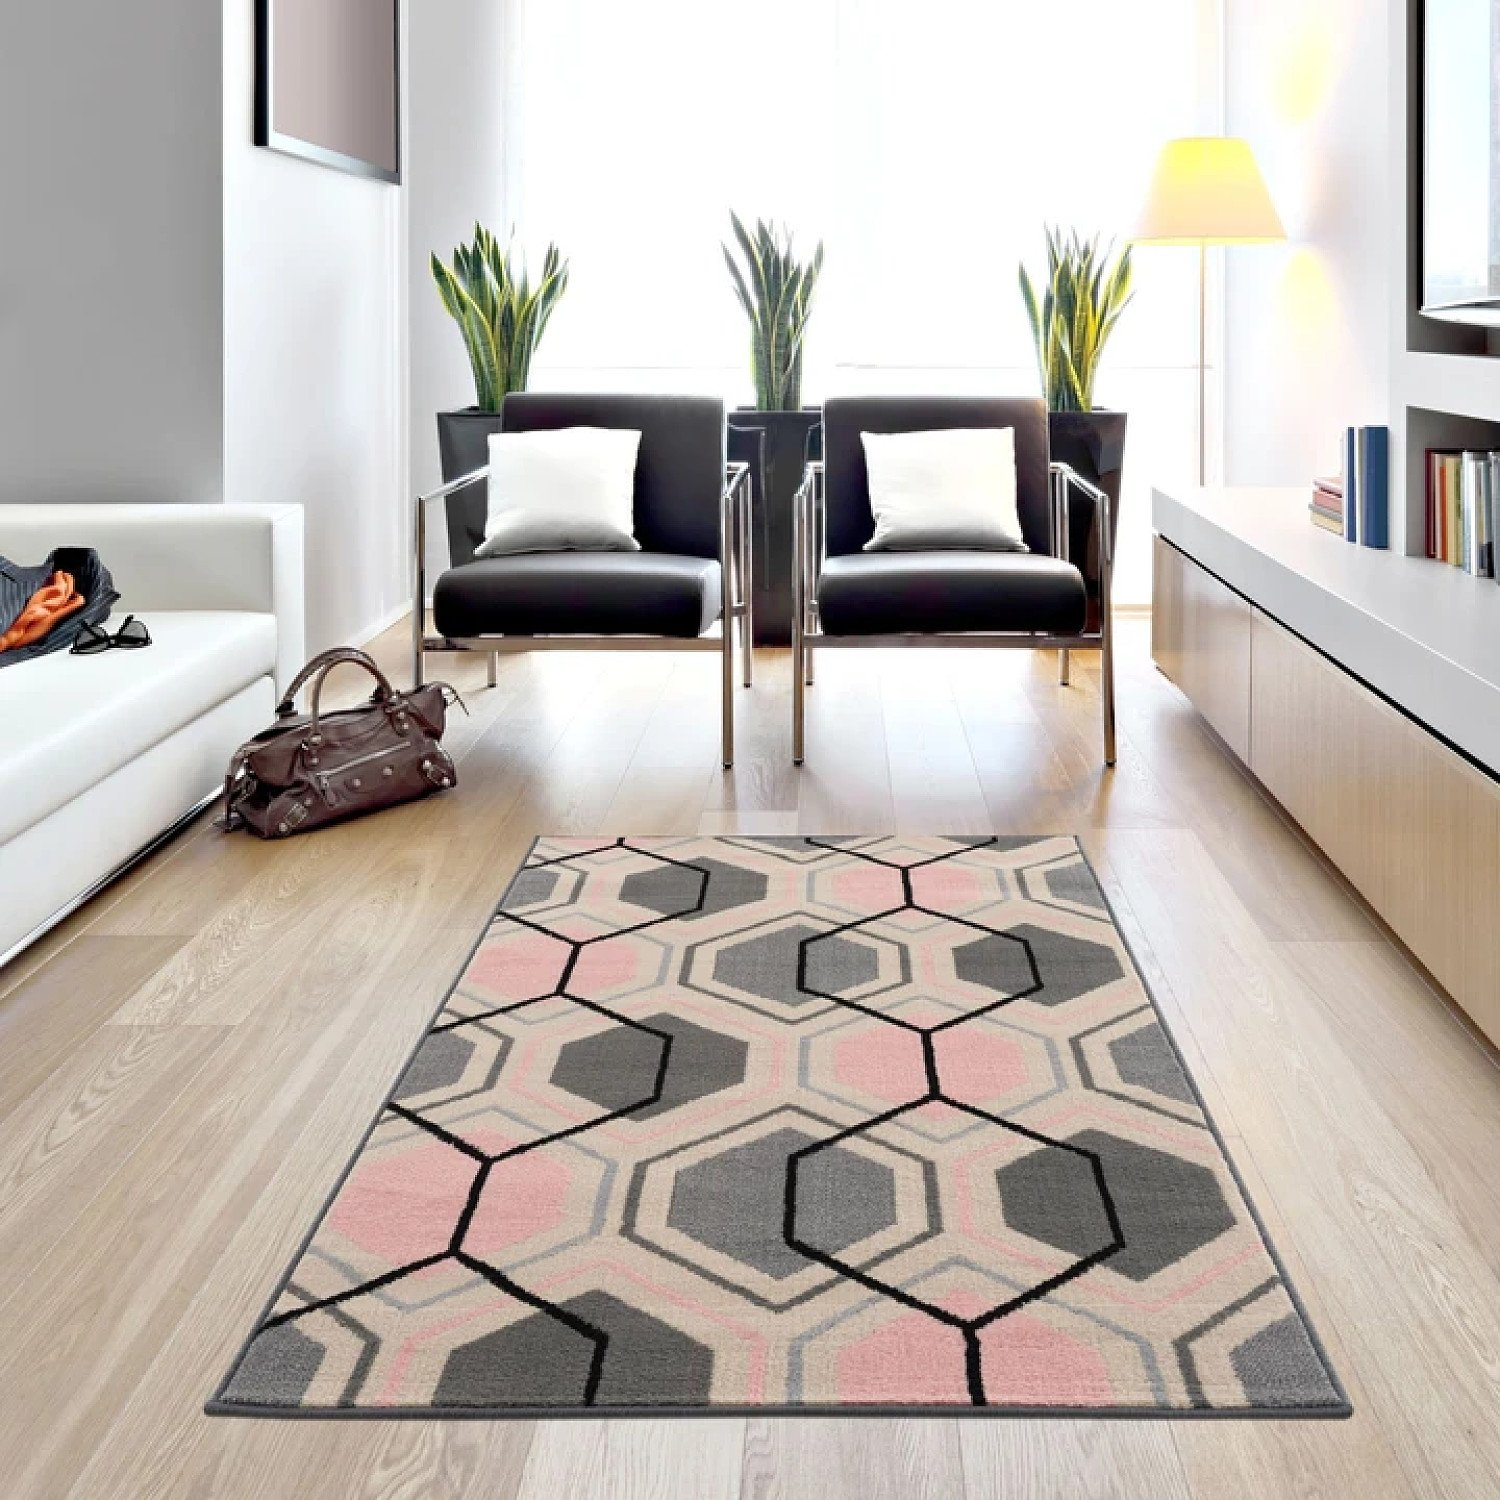 Gustavo Collection Geometric Design Modern Rugs in Pink Free Postage